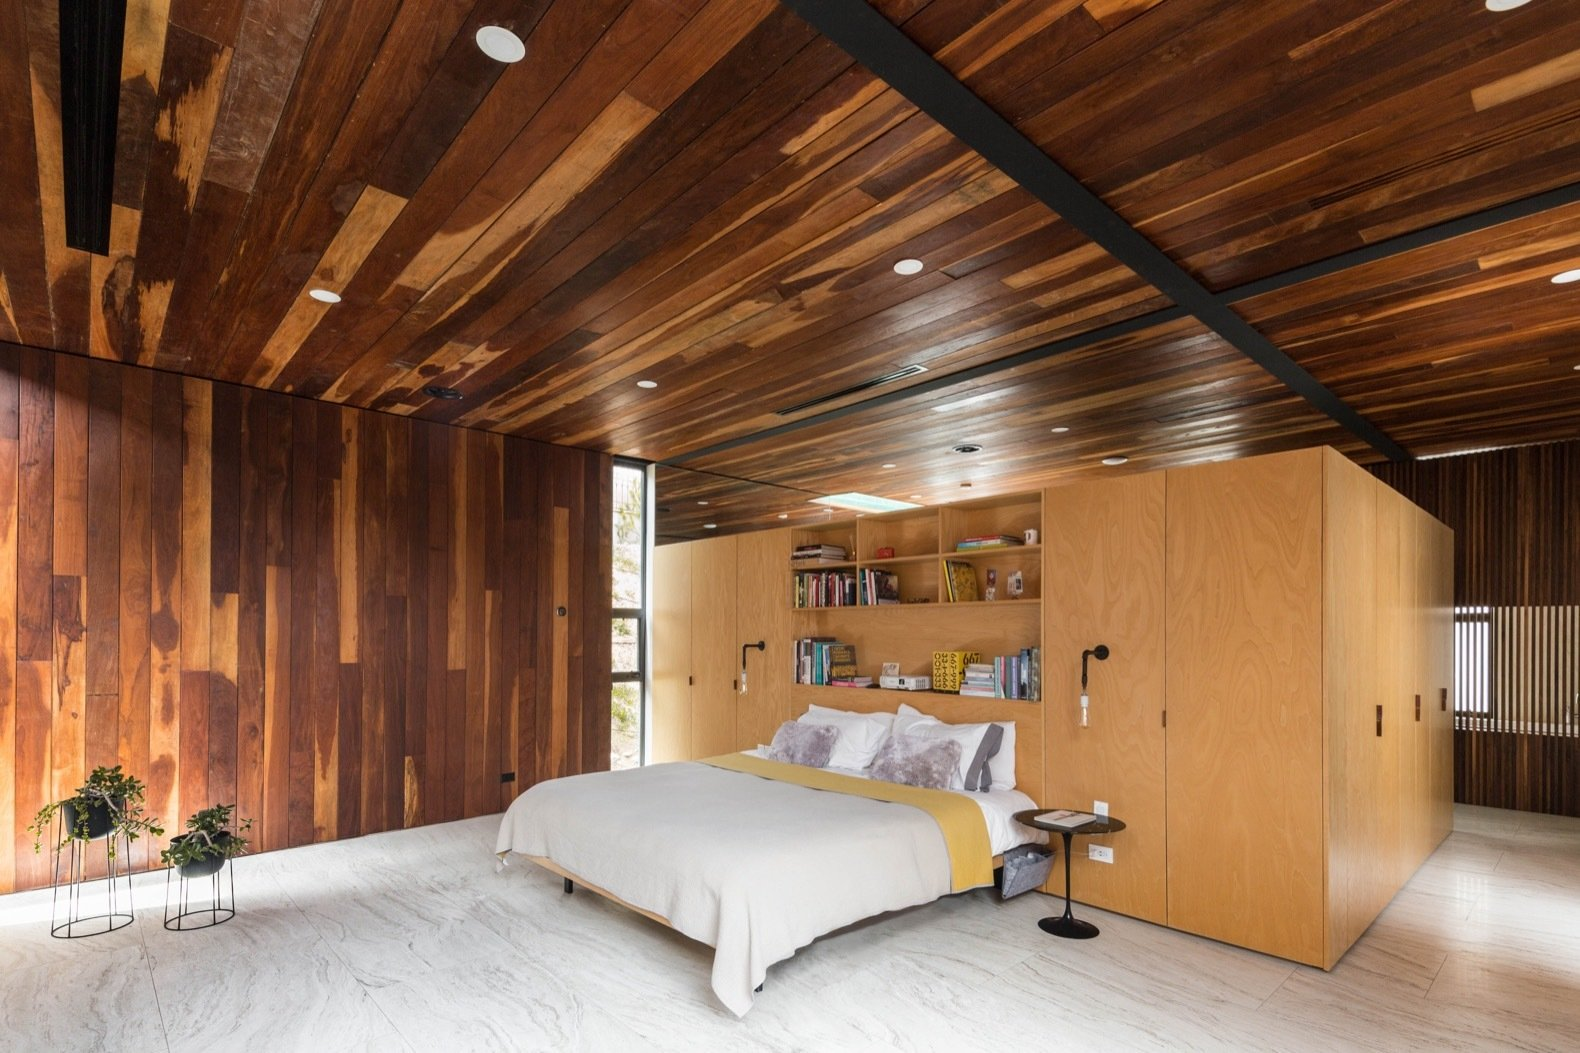 Bedroom, Porcelain Tile, Wall, Bed, Wardrobe, Recessed, Storage, and Night Stands A look at the master bedroom, which unlike the other rooms in the home, features Ipe wood for both the ceiling and walls.    Best Bedroom Wardrobe Bed Porcelain Tile Photos from A Modern Mexican Home Rises With Vertical Timber Cladding